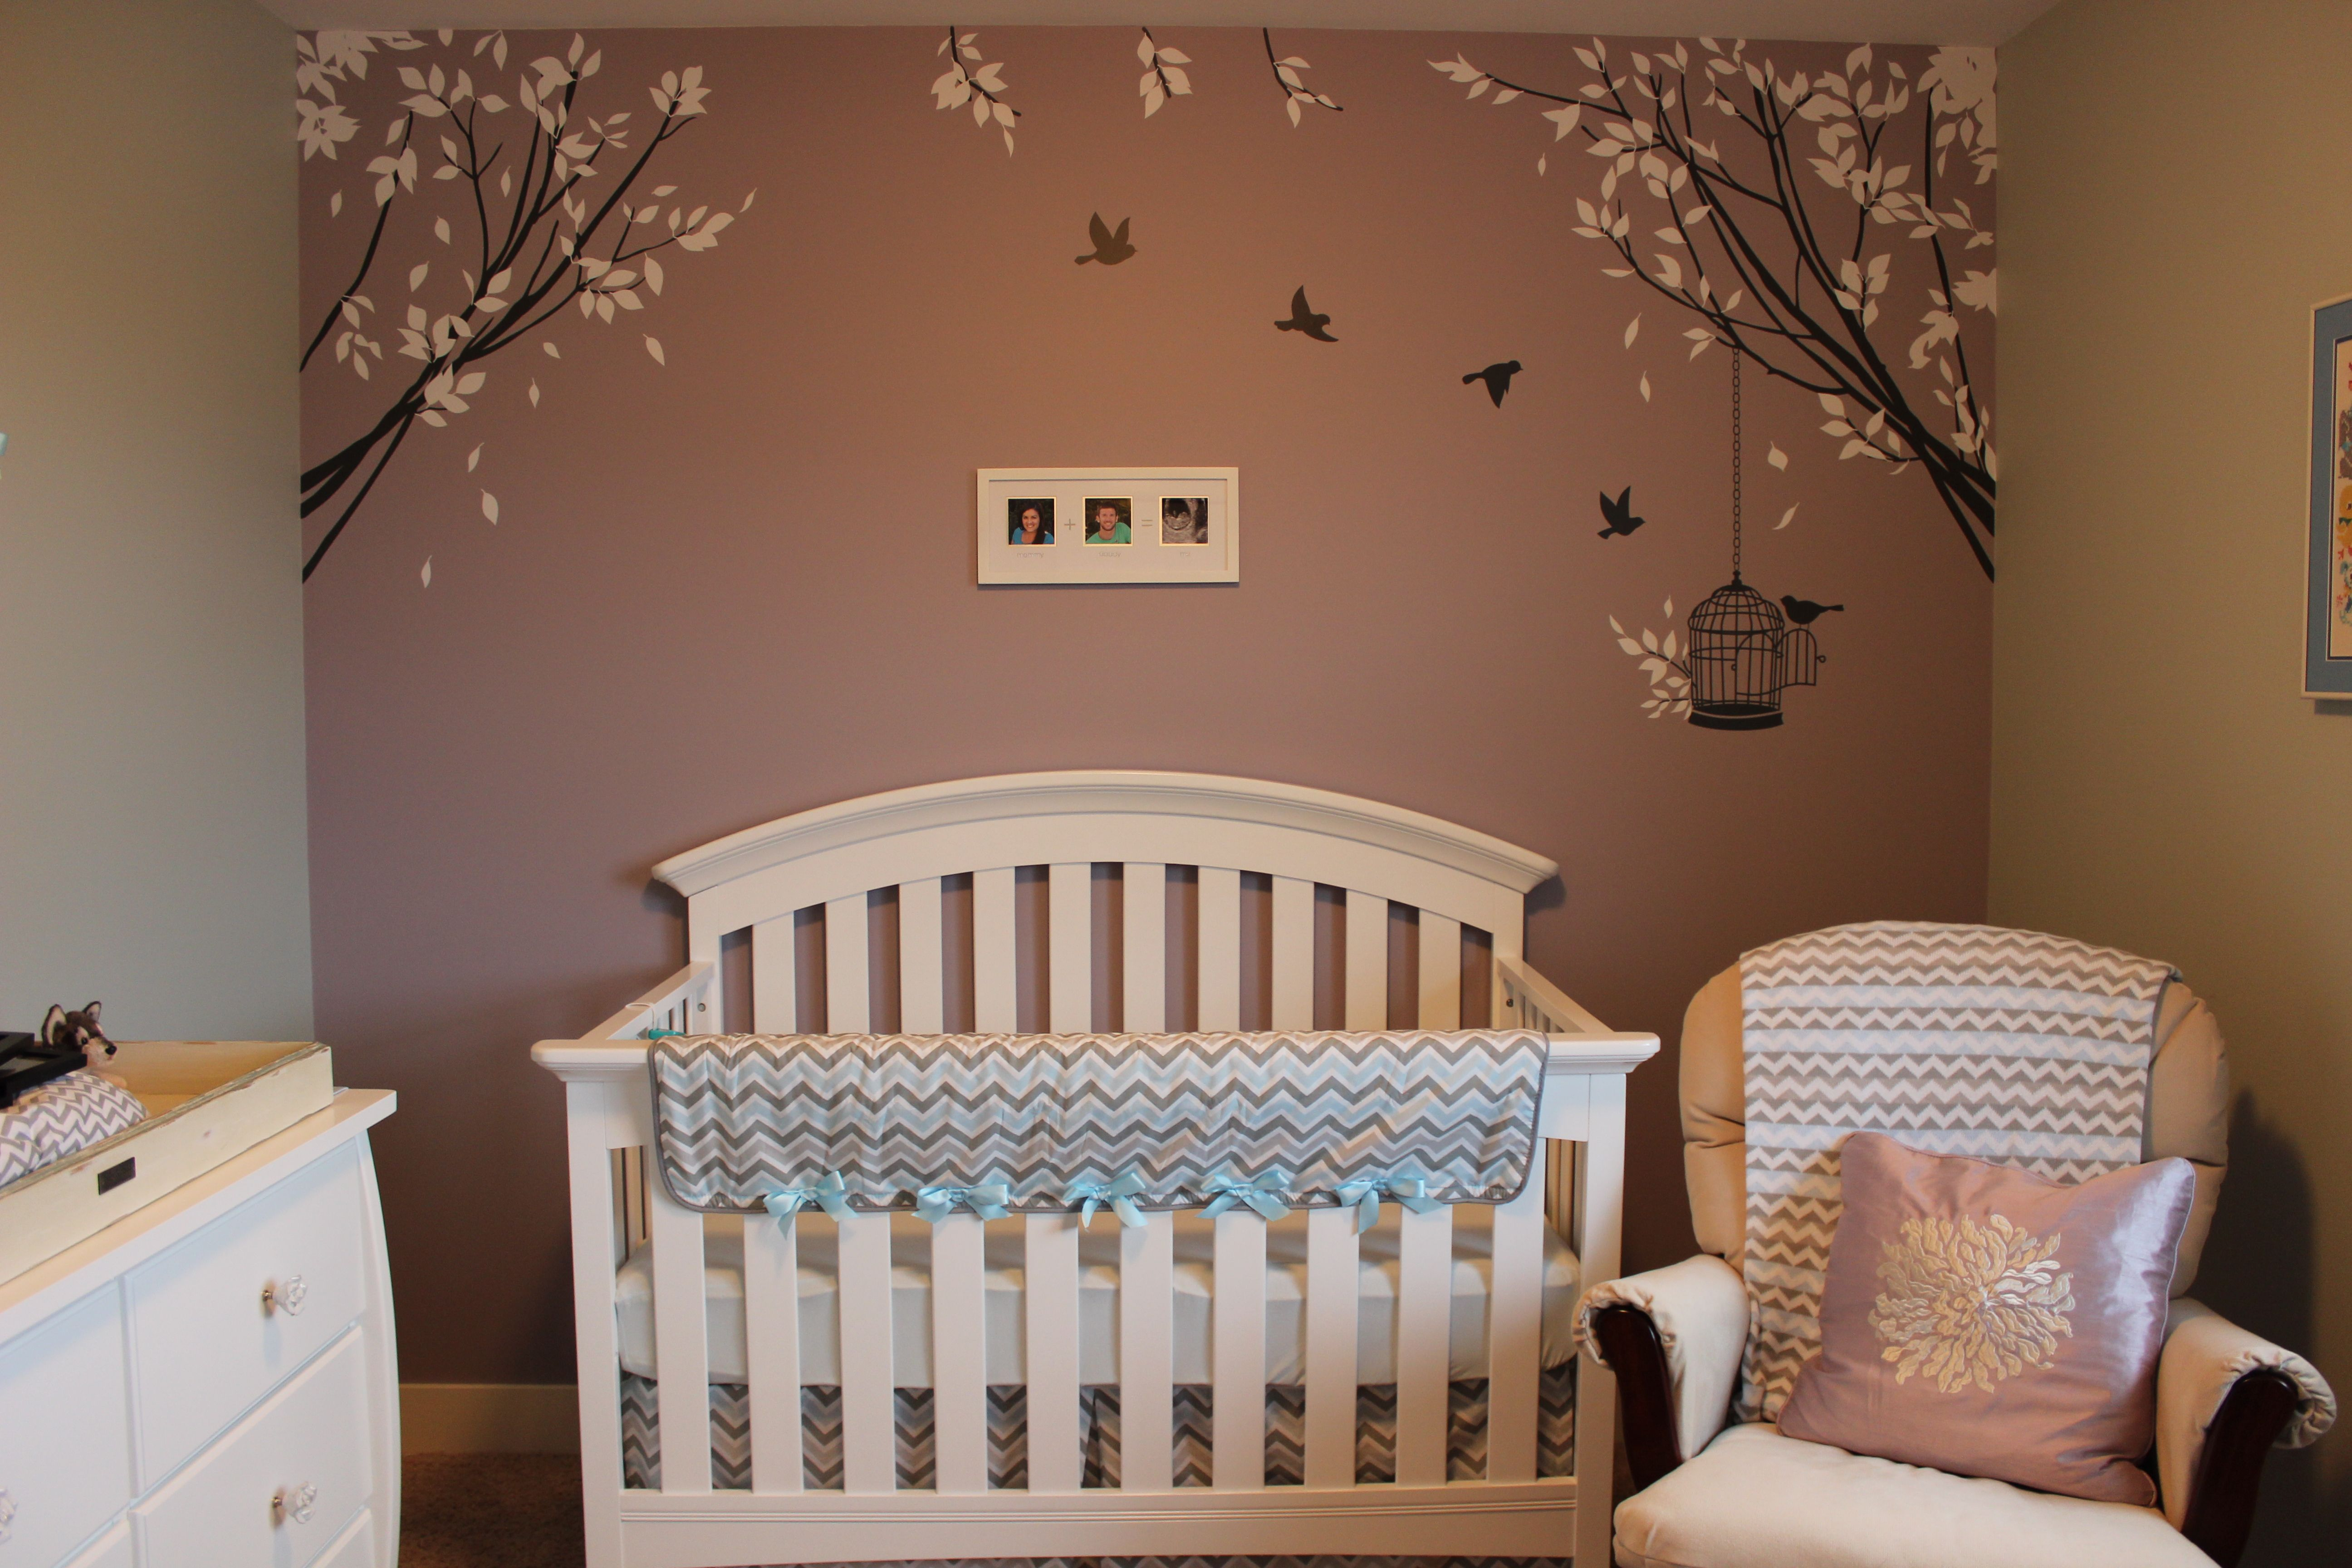 Baby S Room Sears Furniture Toys R Us Chair American Baby Company Bedding Ebay Decal Bed Furniture Home Decor Sears baby bedroom set